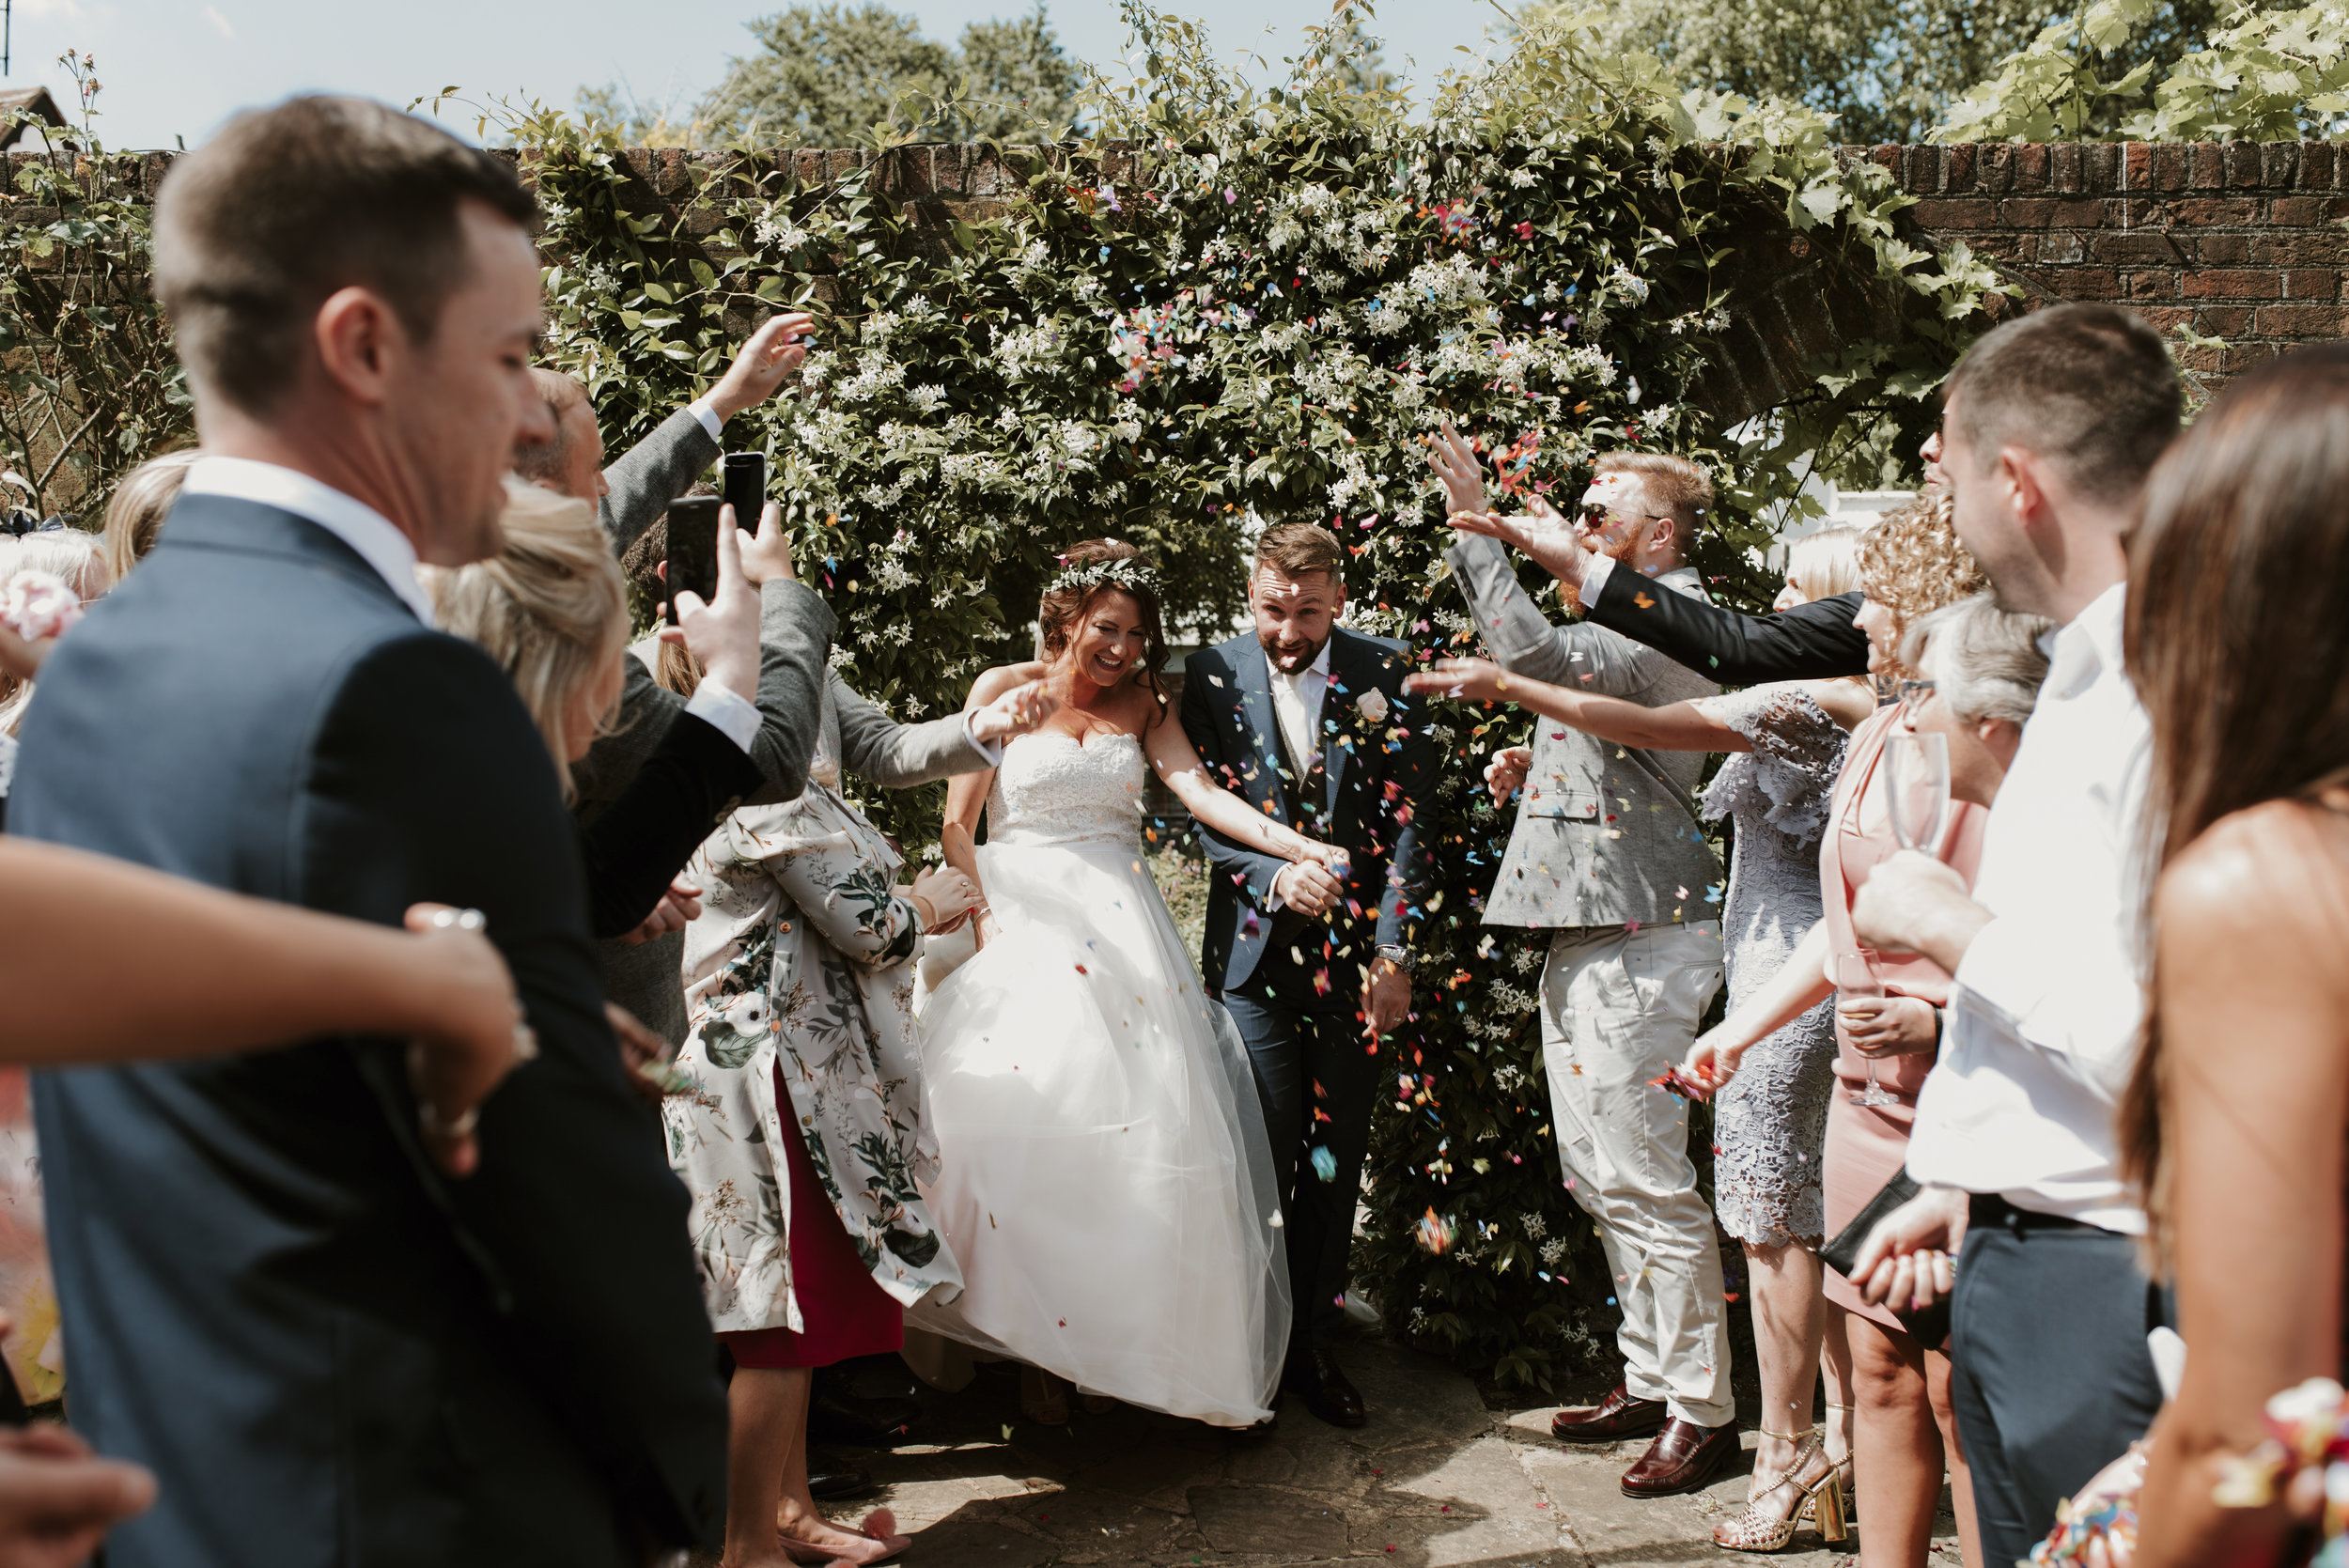 Creative Wedding Photography for Fun Folk - Berkshire | Herefordshire | Oxfordshire | Gloucestershire | Wiltshire | Buckinghamshire